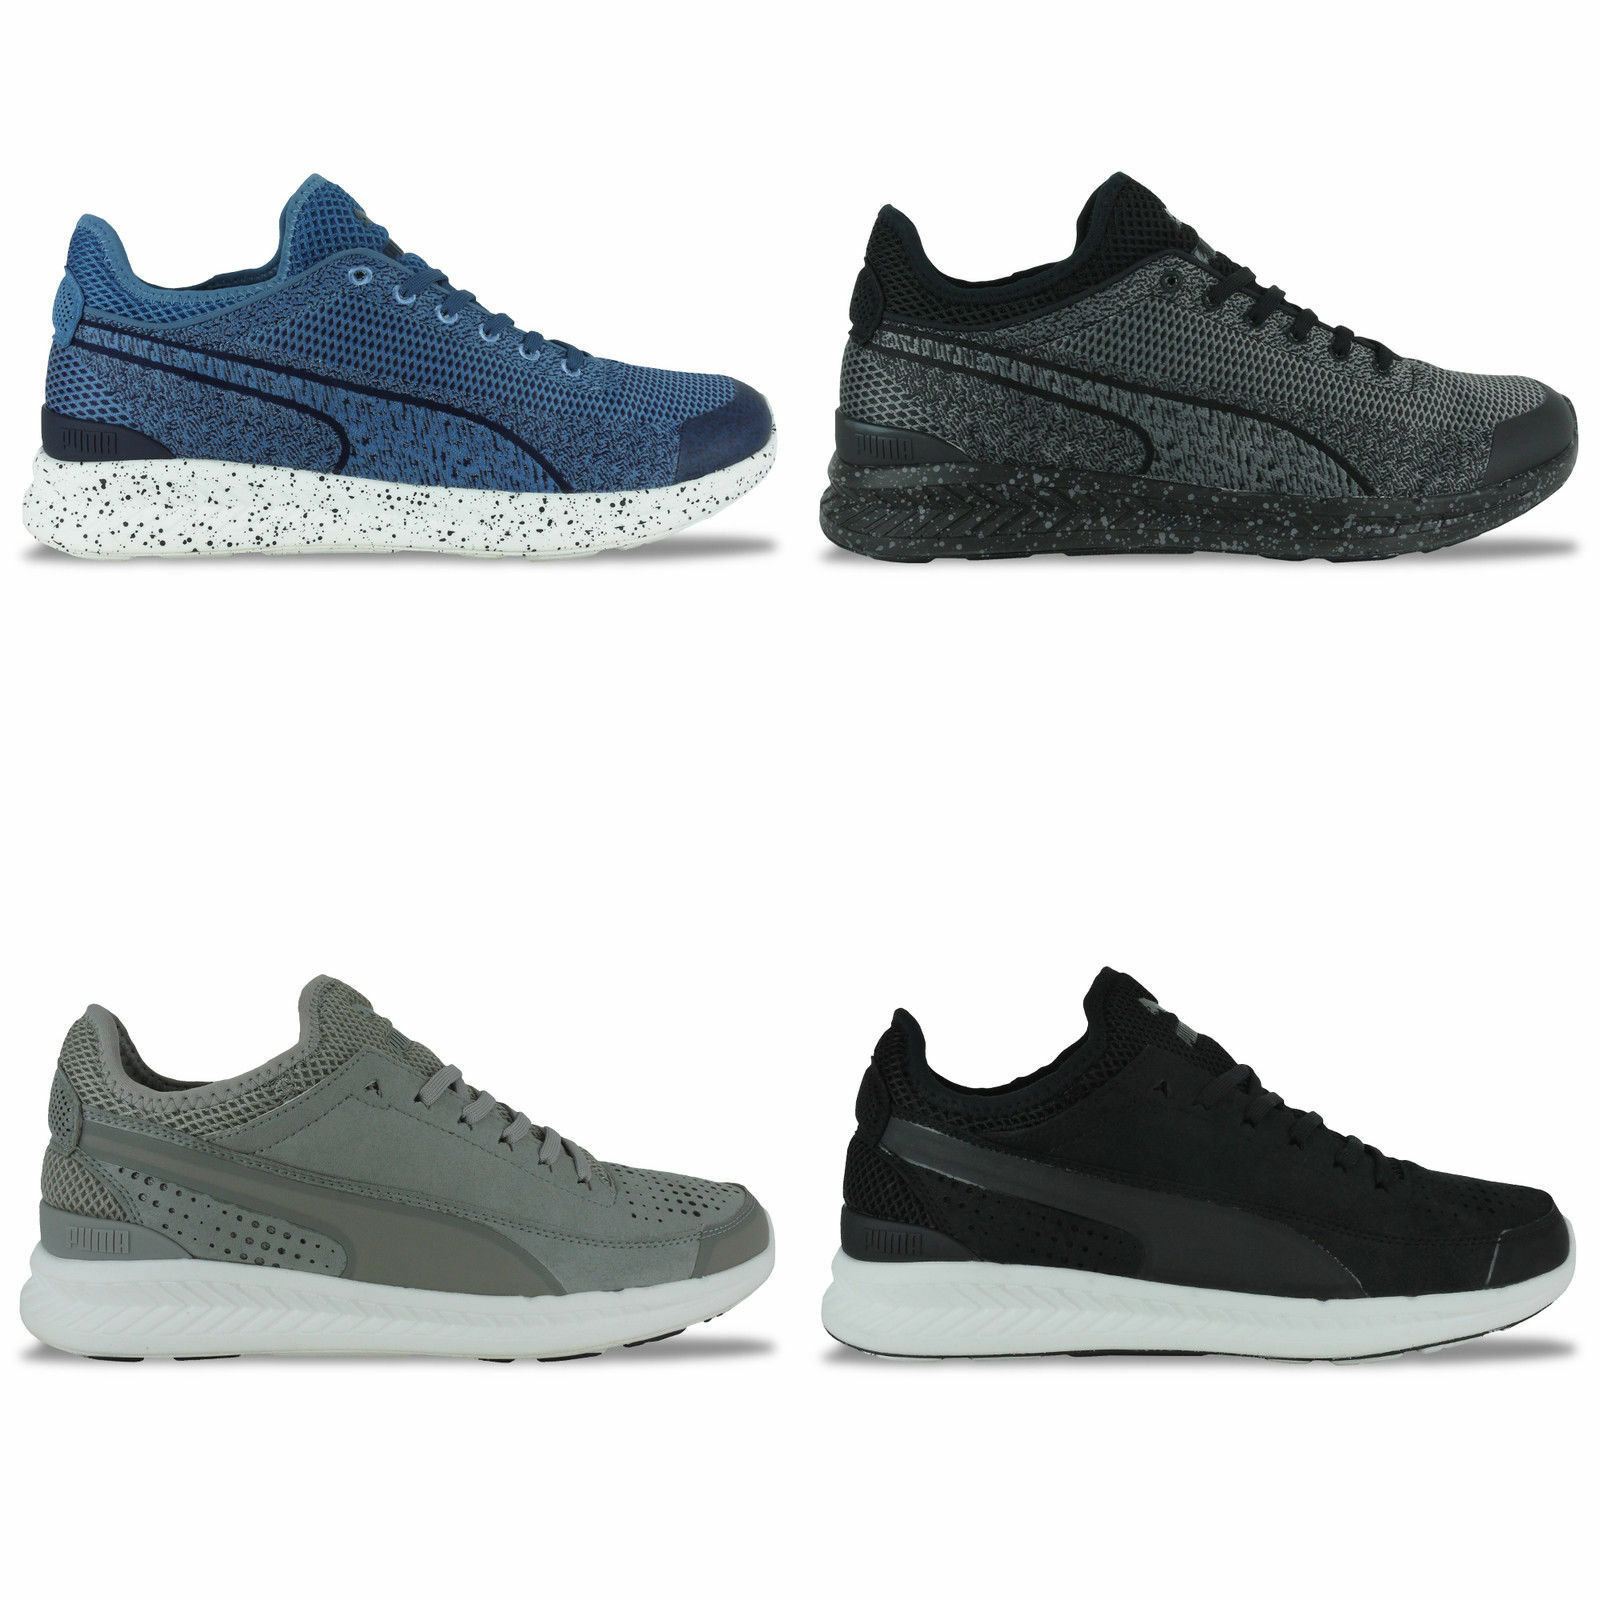 NEW BLUE/GREY/BLACK PUMA IGNITE TRAINERS - BLUE/GREY/BLACK NEW - BNIB 37c8d7